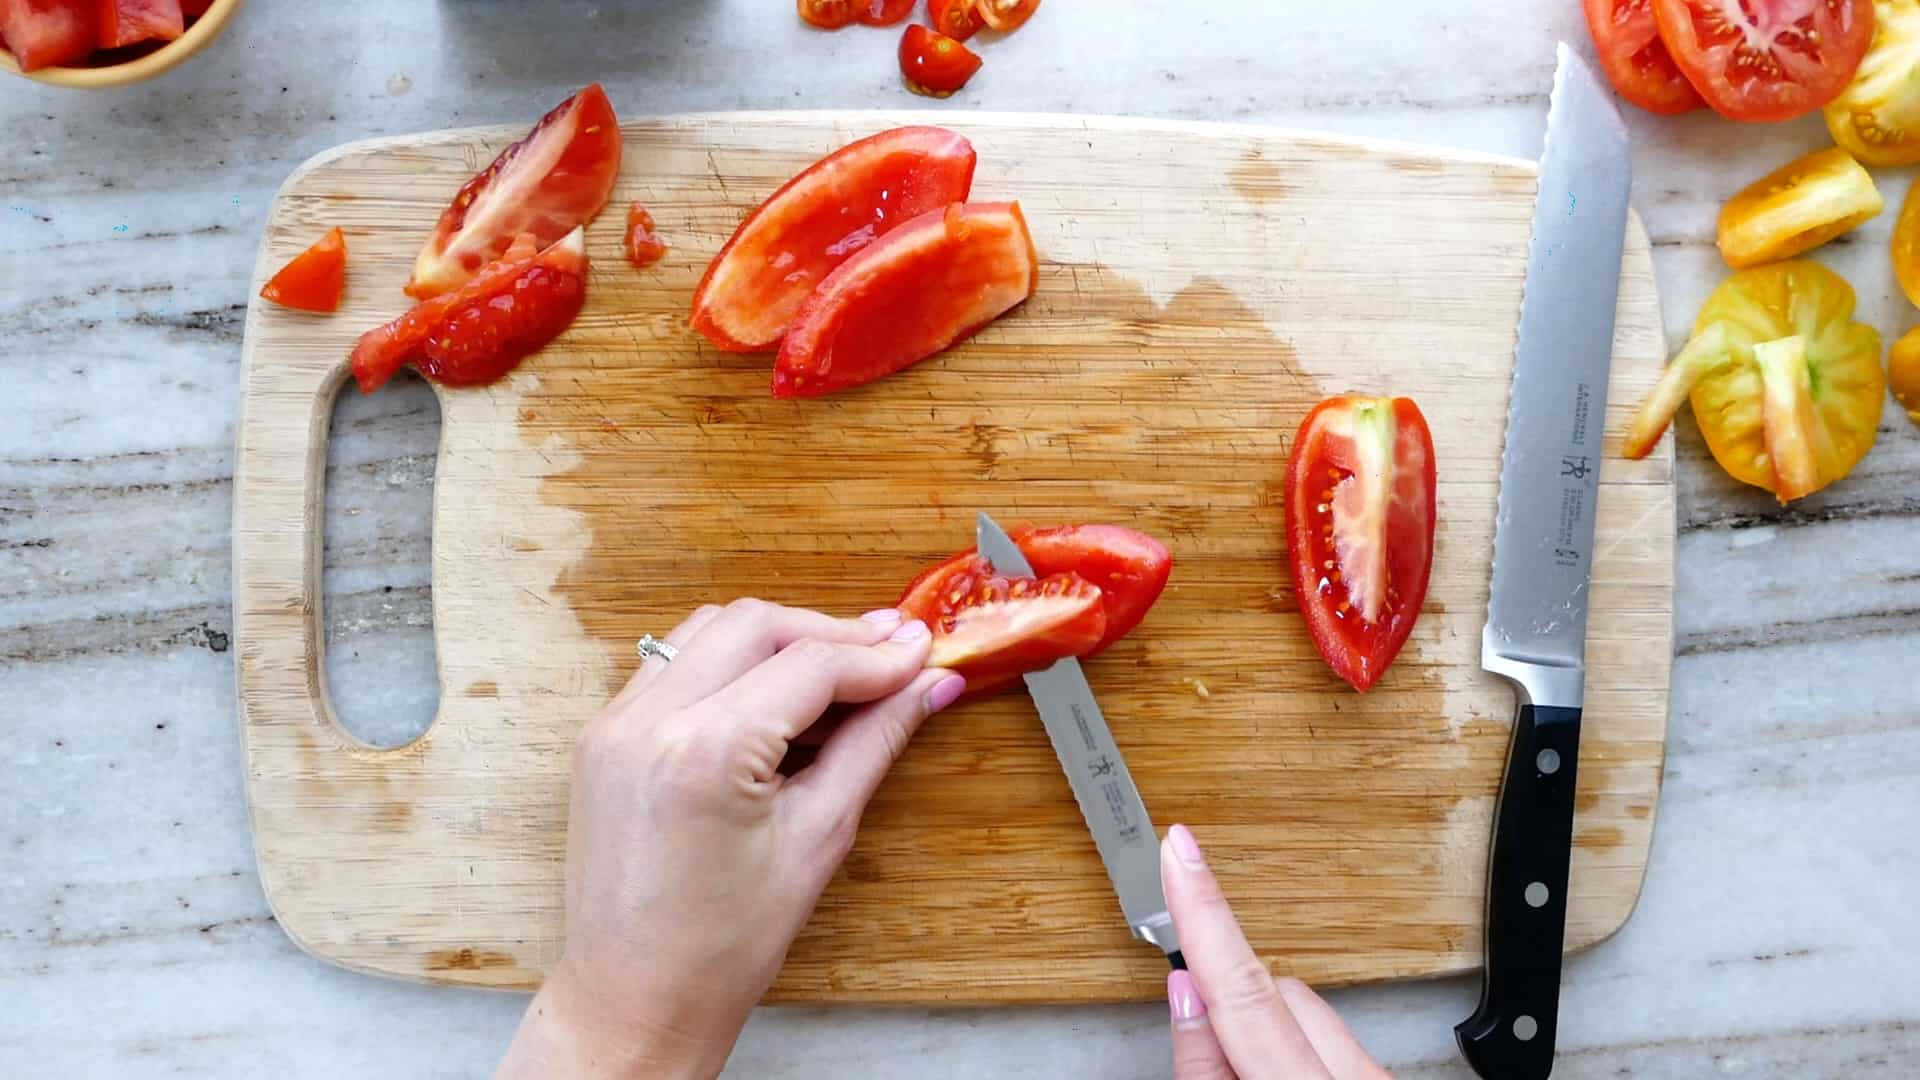 woman removing the seeds from a roma tomato on a cutting board